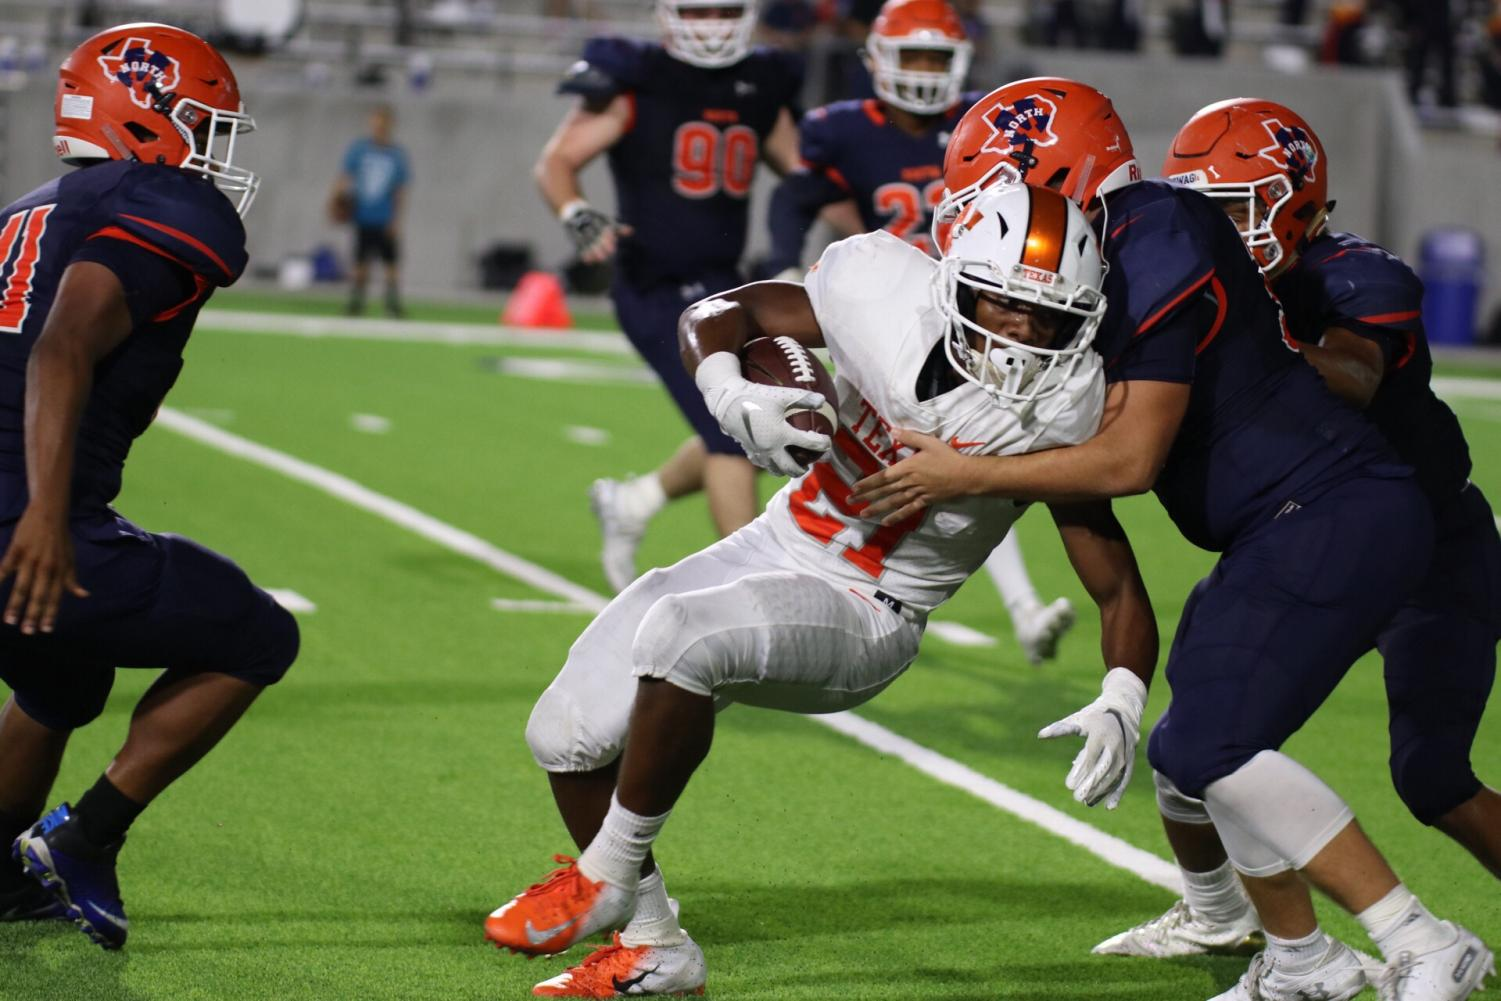 Texas High's Chris Sutton  drives his shoulder into a McKinney defender in the third quarter of the game held in McKinney on October 5, 2018. The Tigers lost to the Bulldogs 47-44.